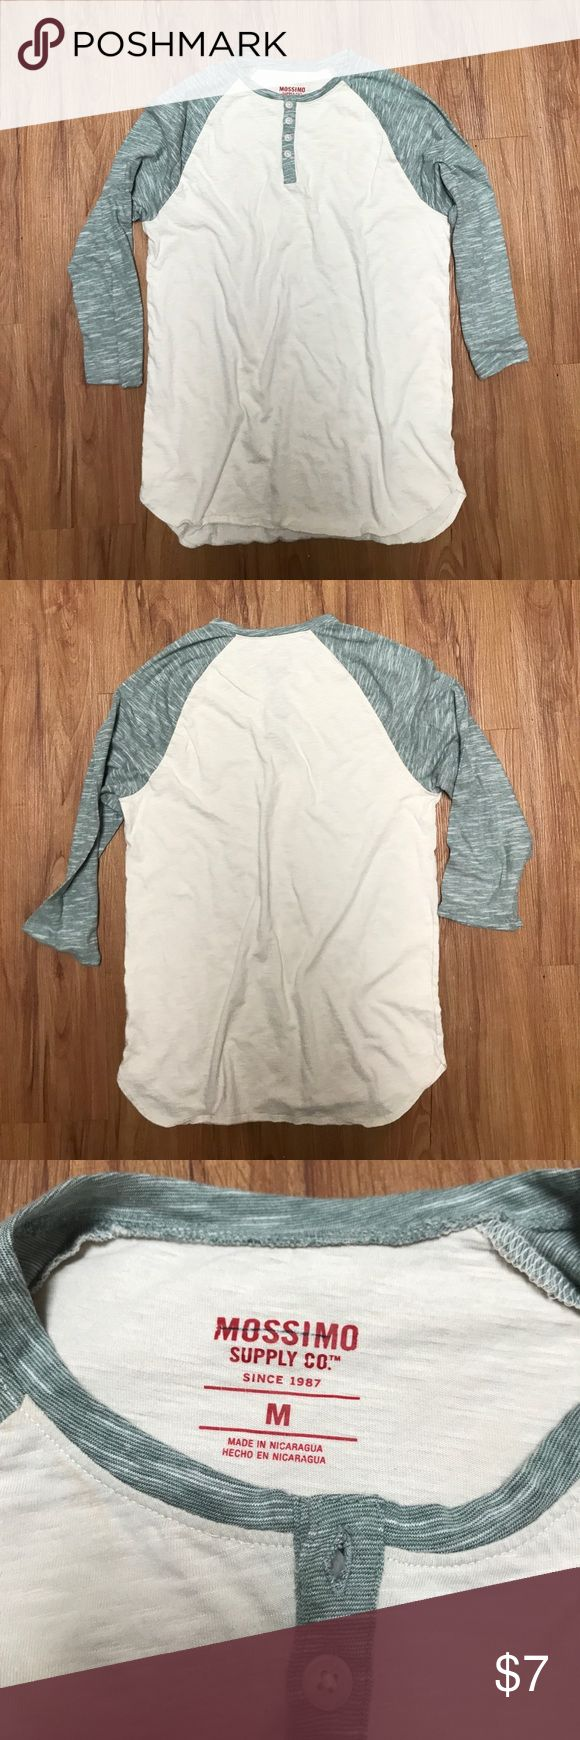 Mossimo Supply Co 3/4 Sleeve Tee Used in good condition. Mossimo Supply Co. Shirts Tees - Long Sleeve